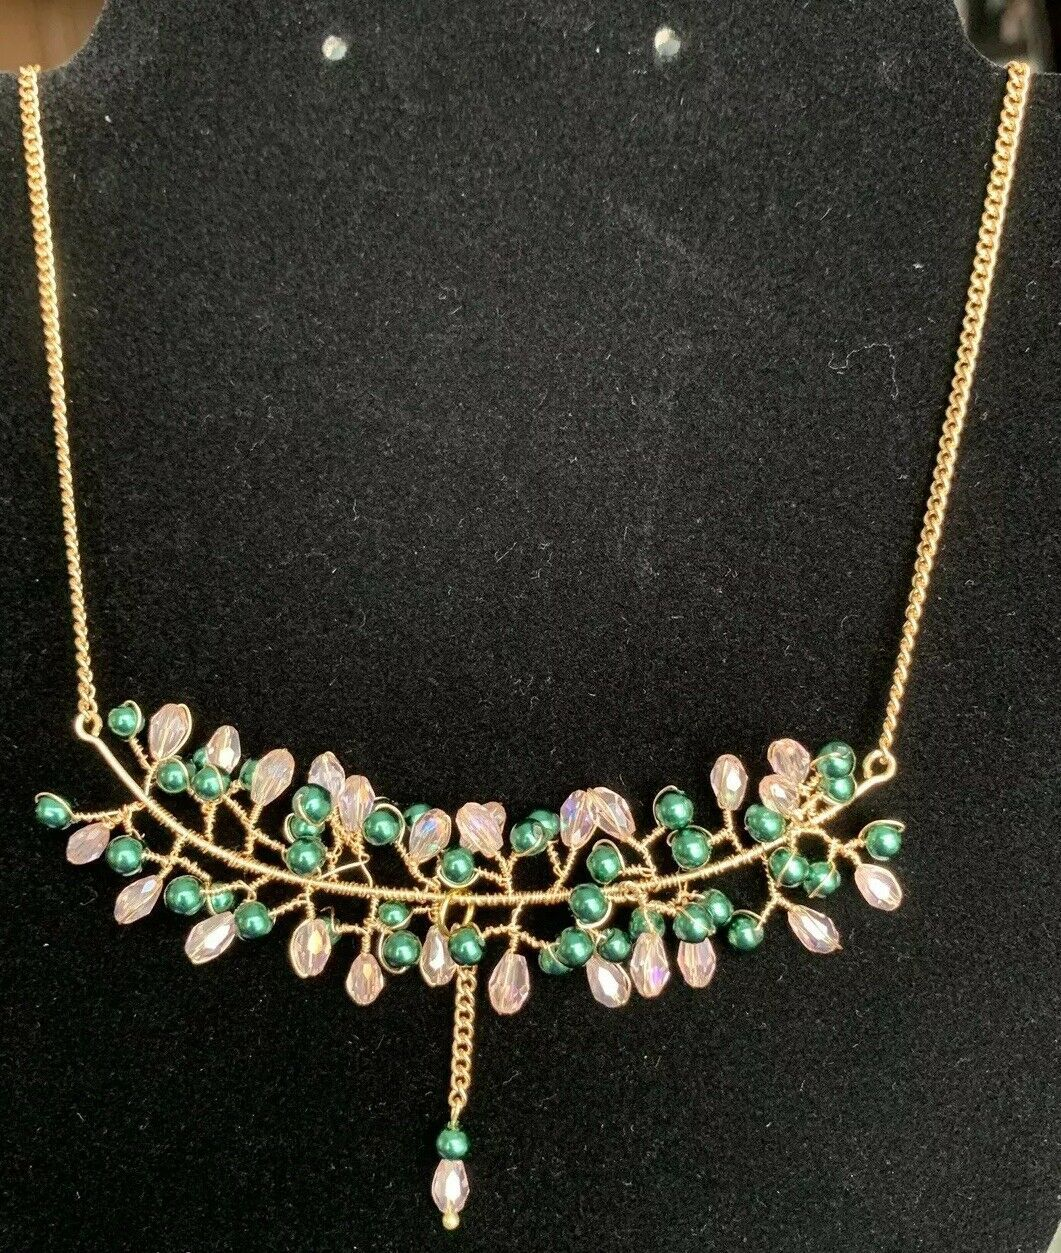 Primary image for Handmade Pink and Green Wire wrapped vine chain necklace, everyday fashion, gift